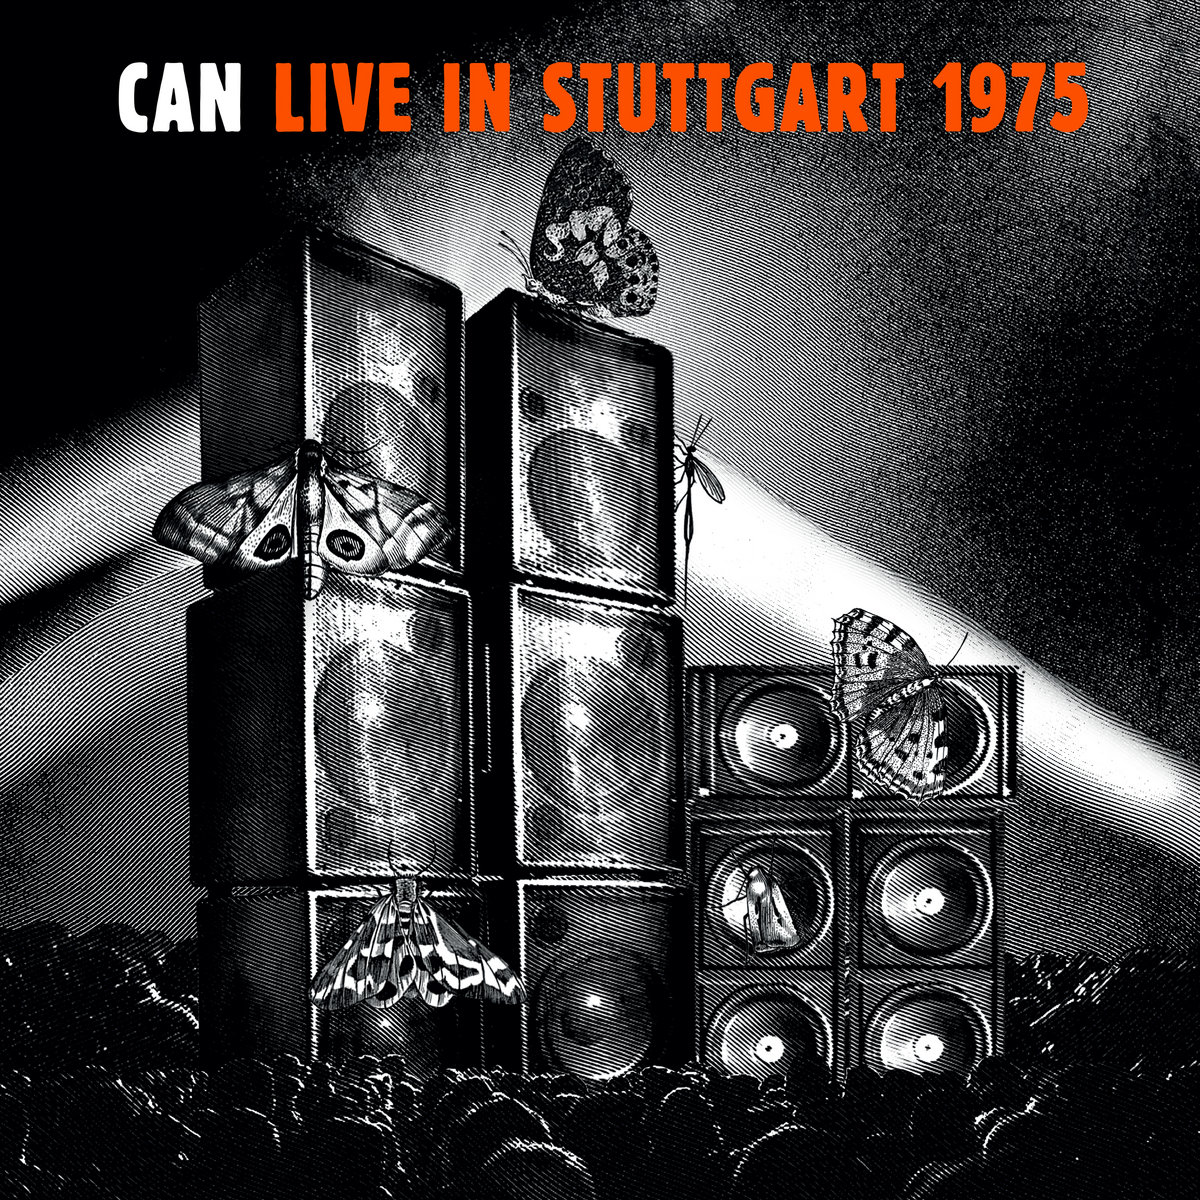 Can Live in Stuttgart 1975 cover image